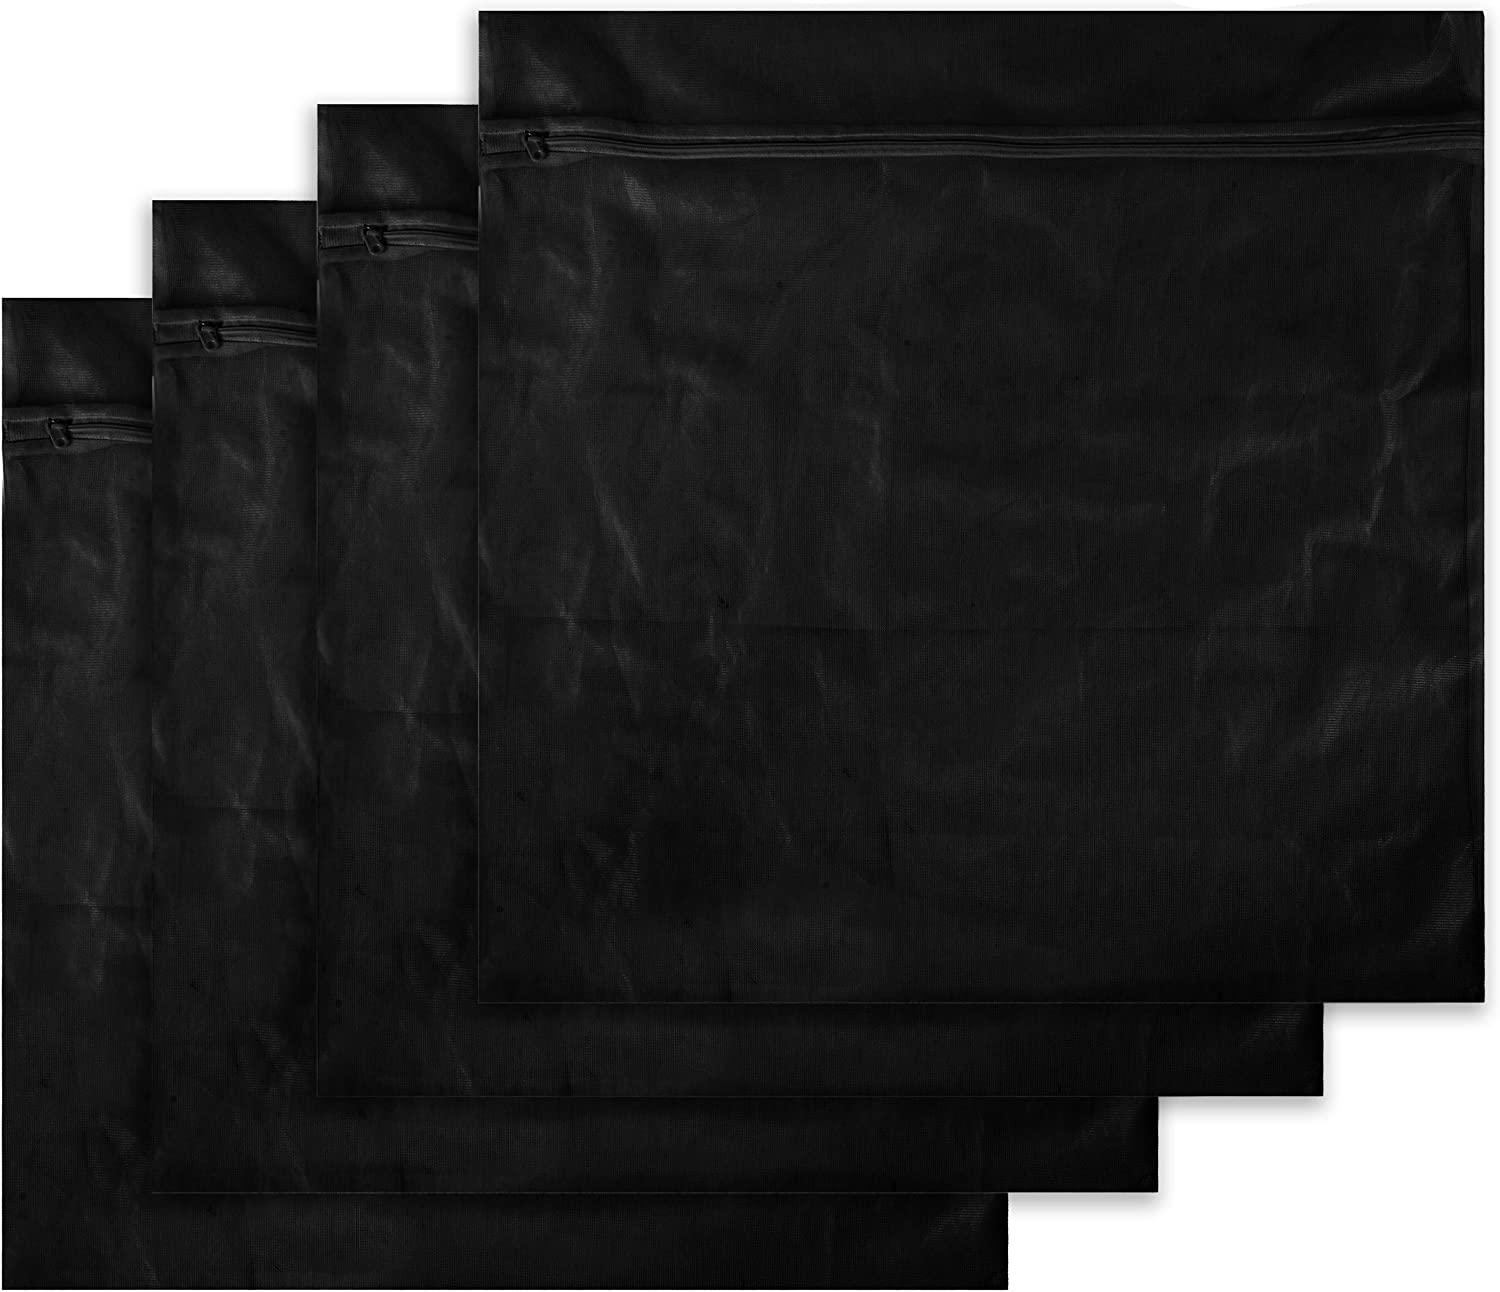 Supply Essentials Laundry Bags, Set of 4 XL (Extra Large) Mesh with Zipper - Delicates Laundry Bag, Intimates, Lingerie, Bras, Dirty Laundry, Large Mesh Laundry Bags and Accessories Wash Bag, (Black)